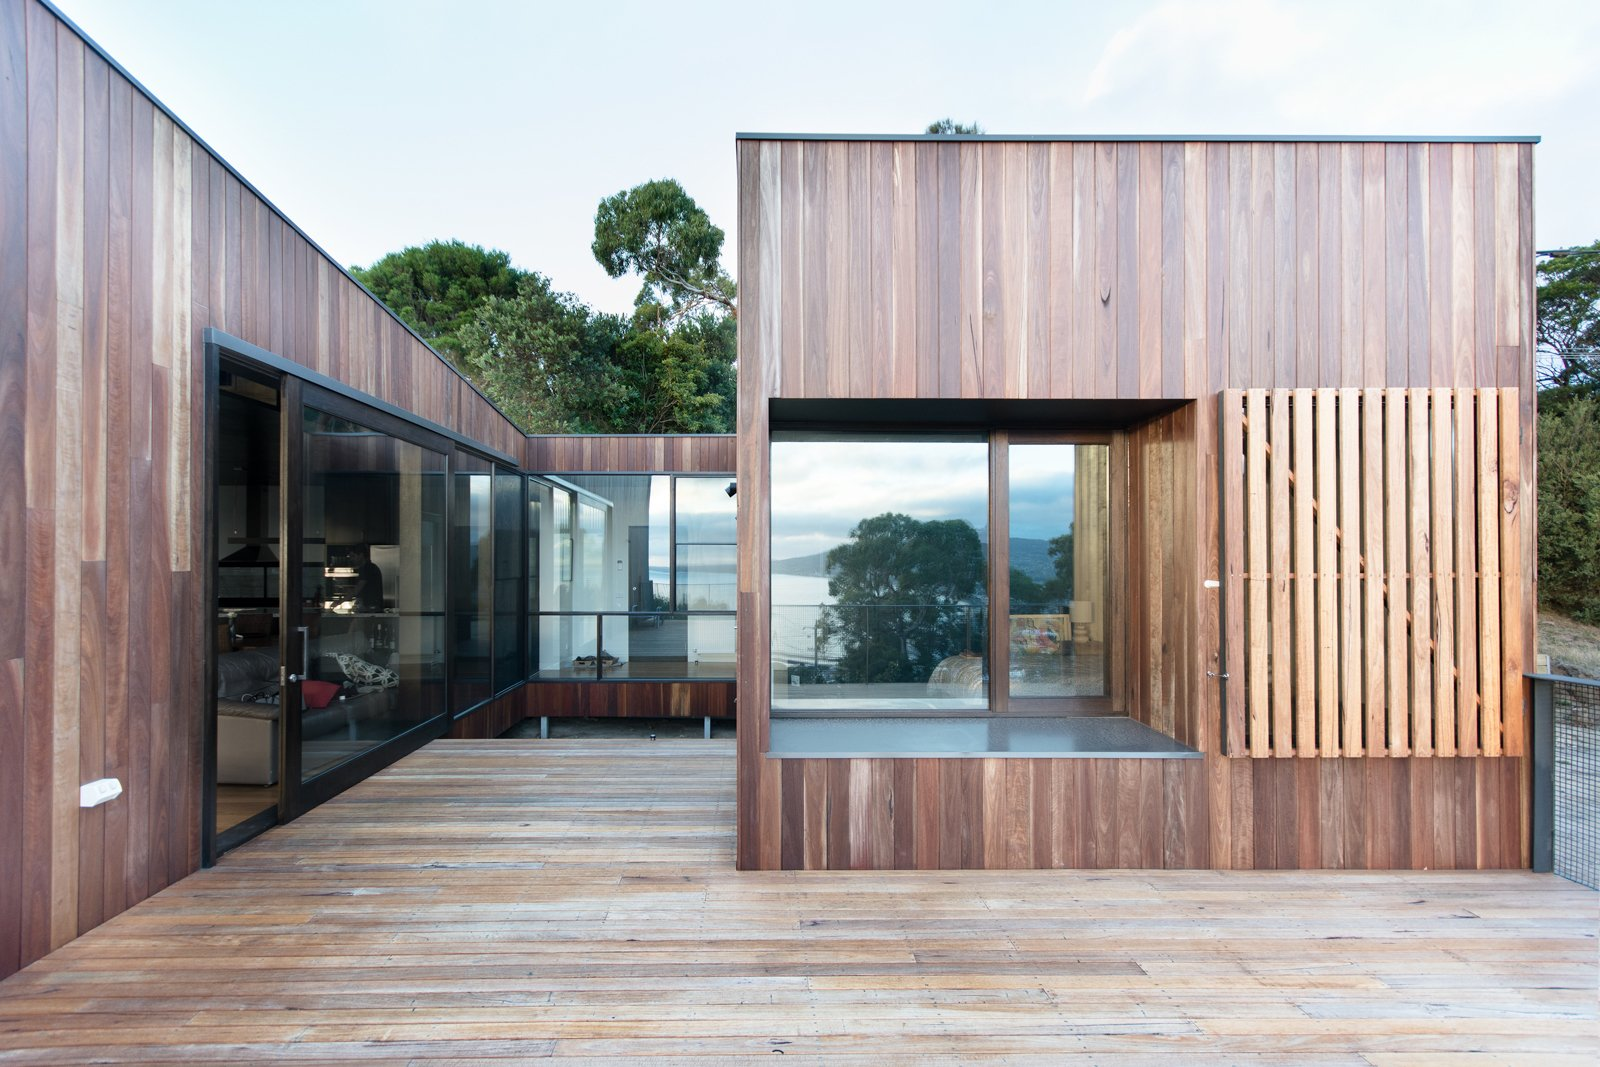 Outdoor, Large Patio, Porch, Deck, Back Yard, Trees, Wood Patio, Porch, Deck, and Metal Fences, Wall Operable timber shutters and screens offer protection from extreme weather. Zoning the house into three distinct masses creates a partly sheltered courtyard to make this year-round blending of the indoors and outdoors possible.  Photo 1 of 8 in An Australian Beach Home with Stunning Ocean Views from Martha